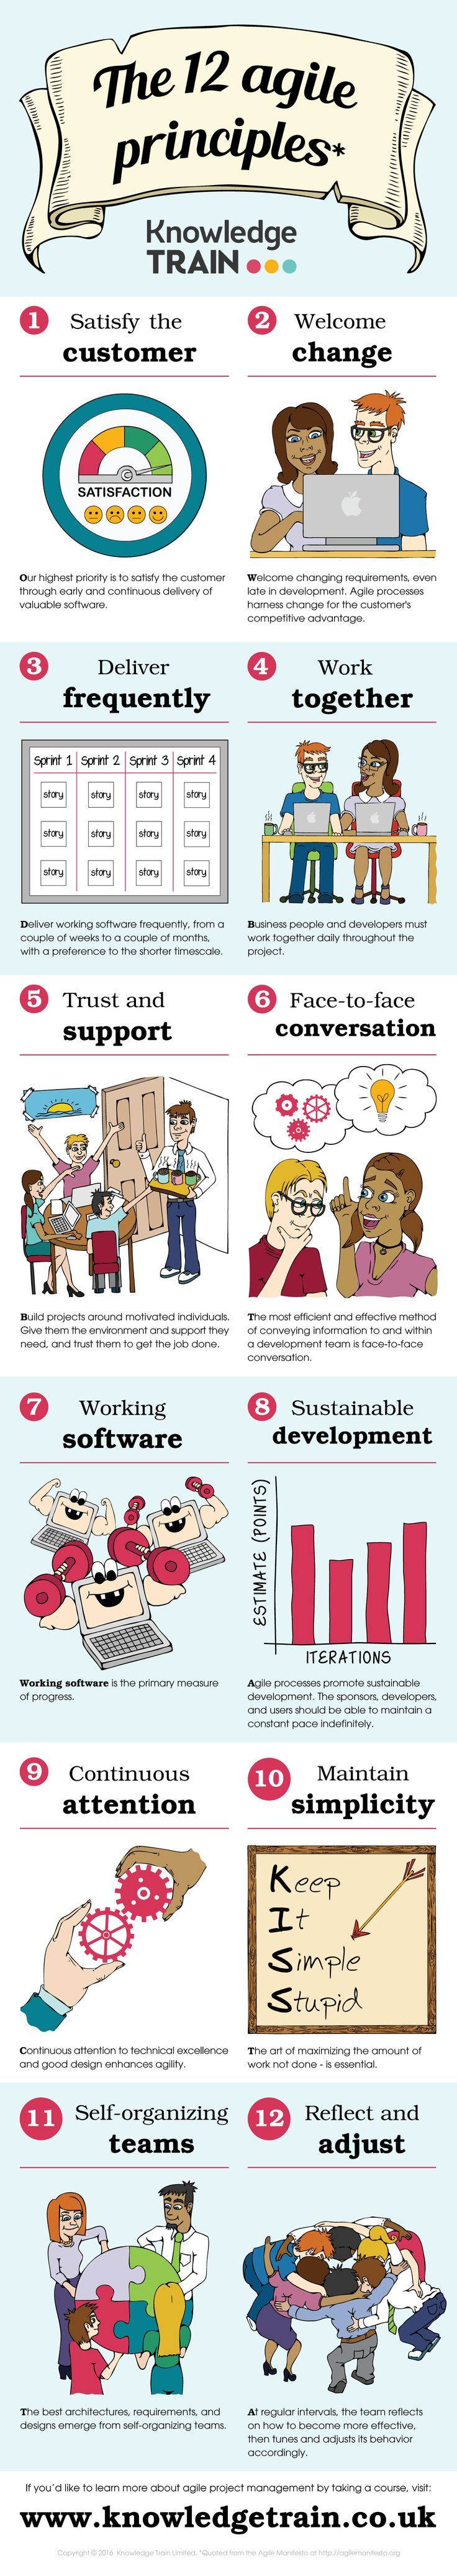 12 Principles for Agile Project Management in beautifully simple text and graphics.